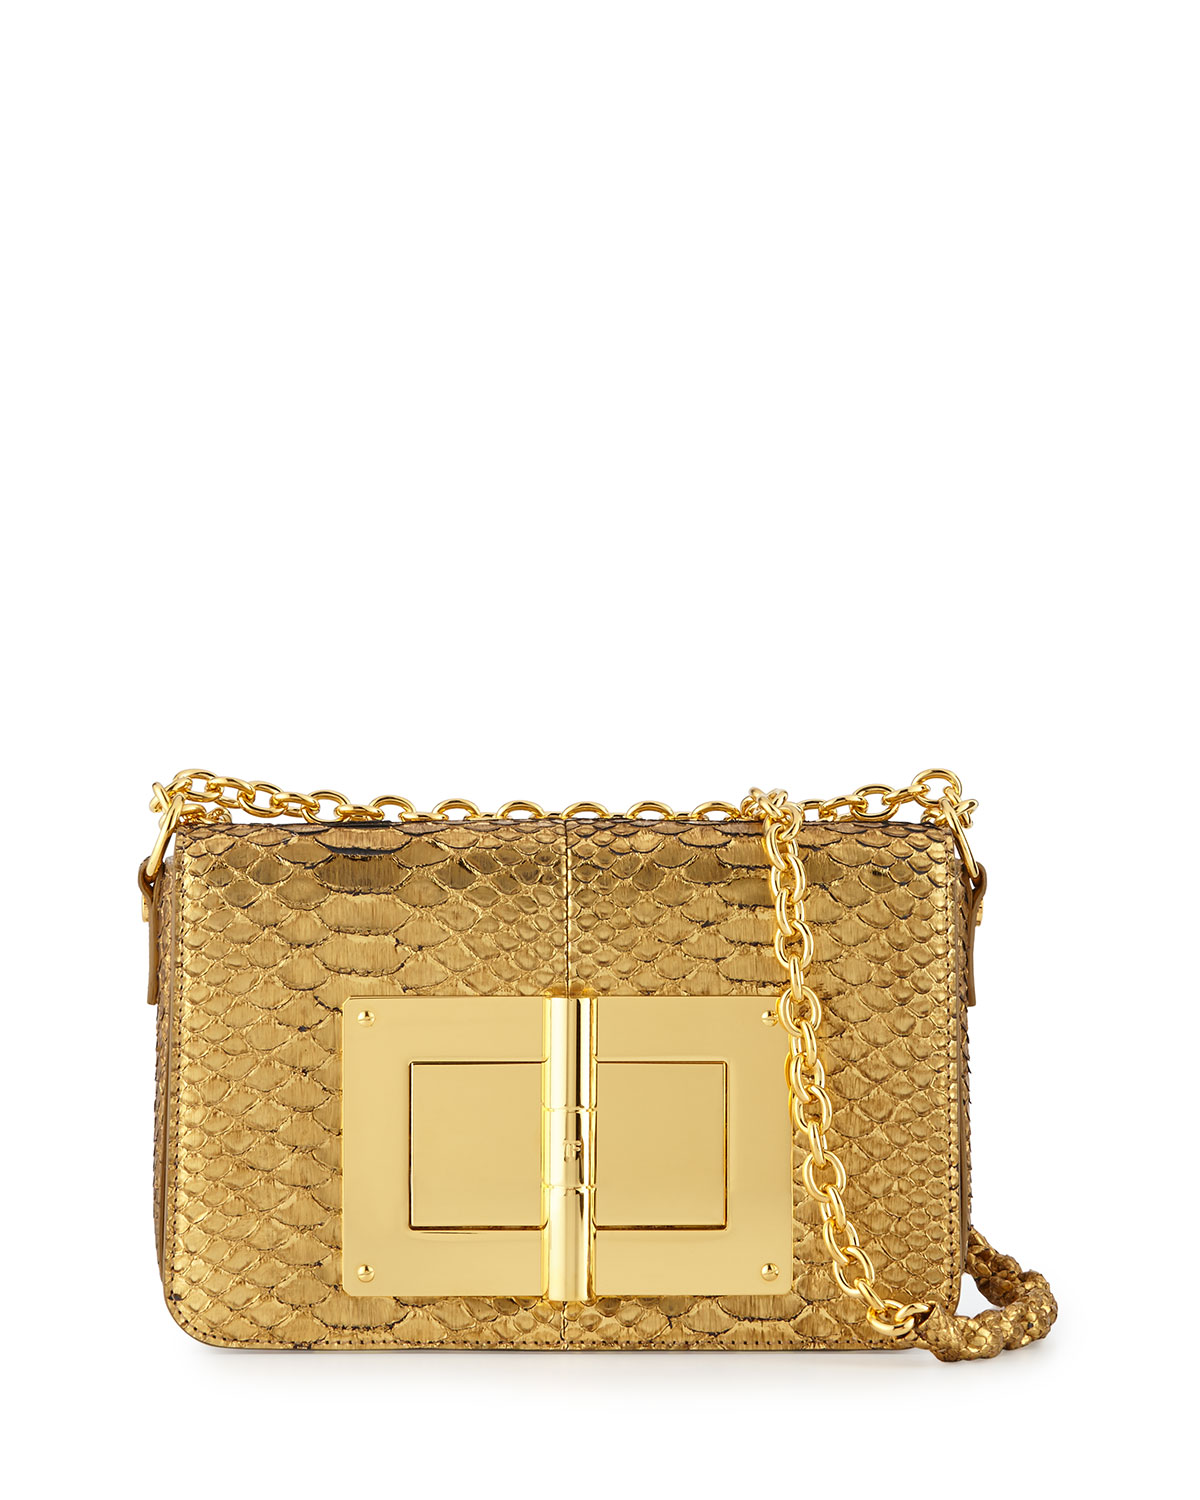 5fee1465fafb TOM FORD Natalia Medium Python Crossbody Bag